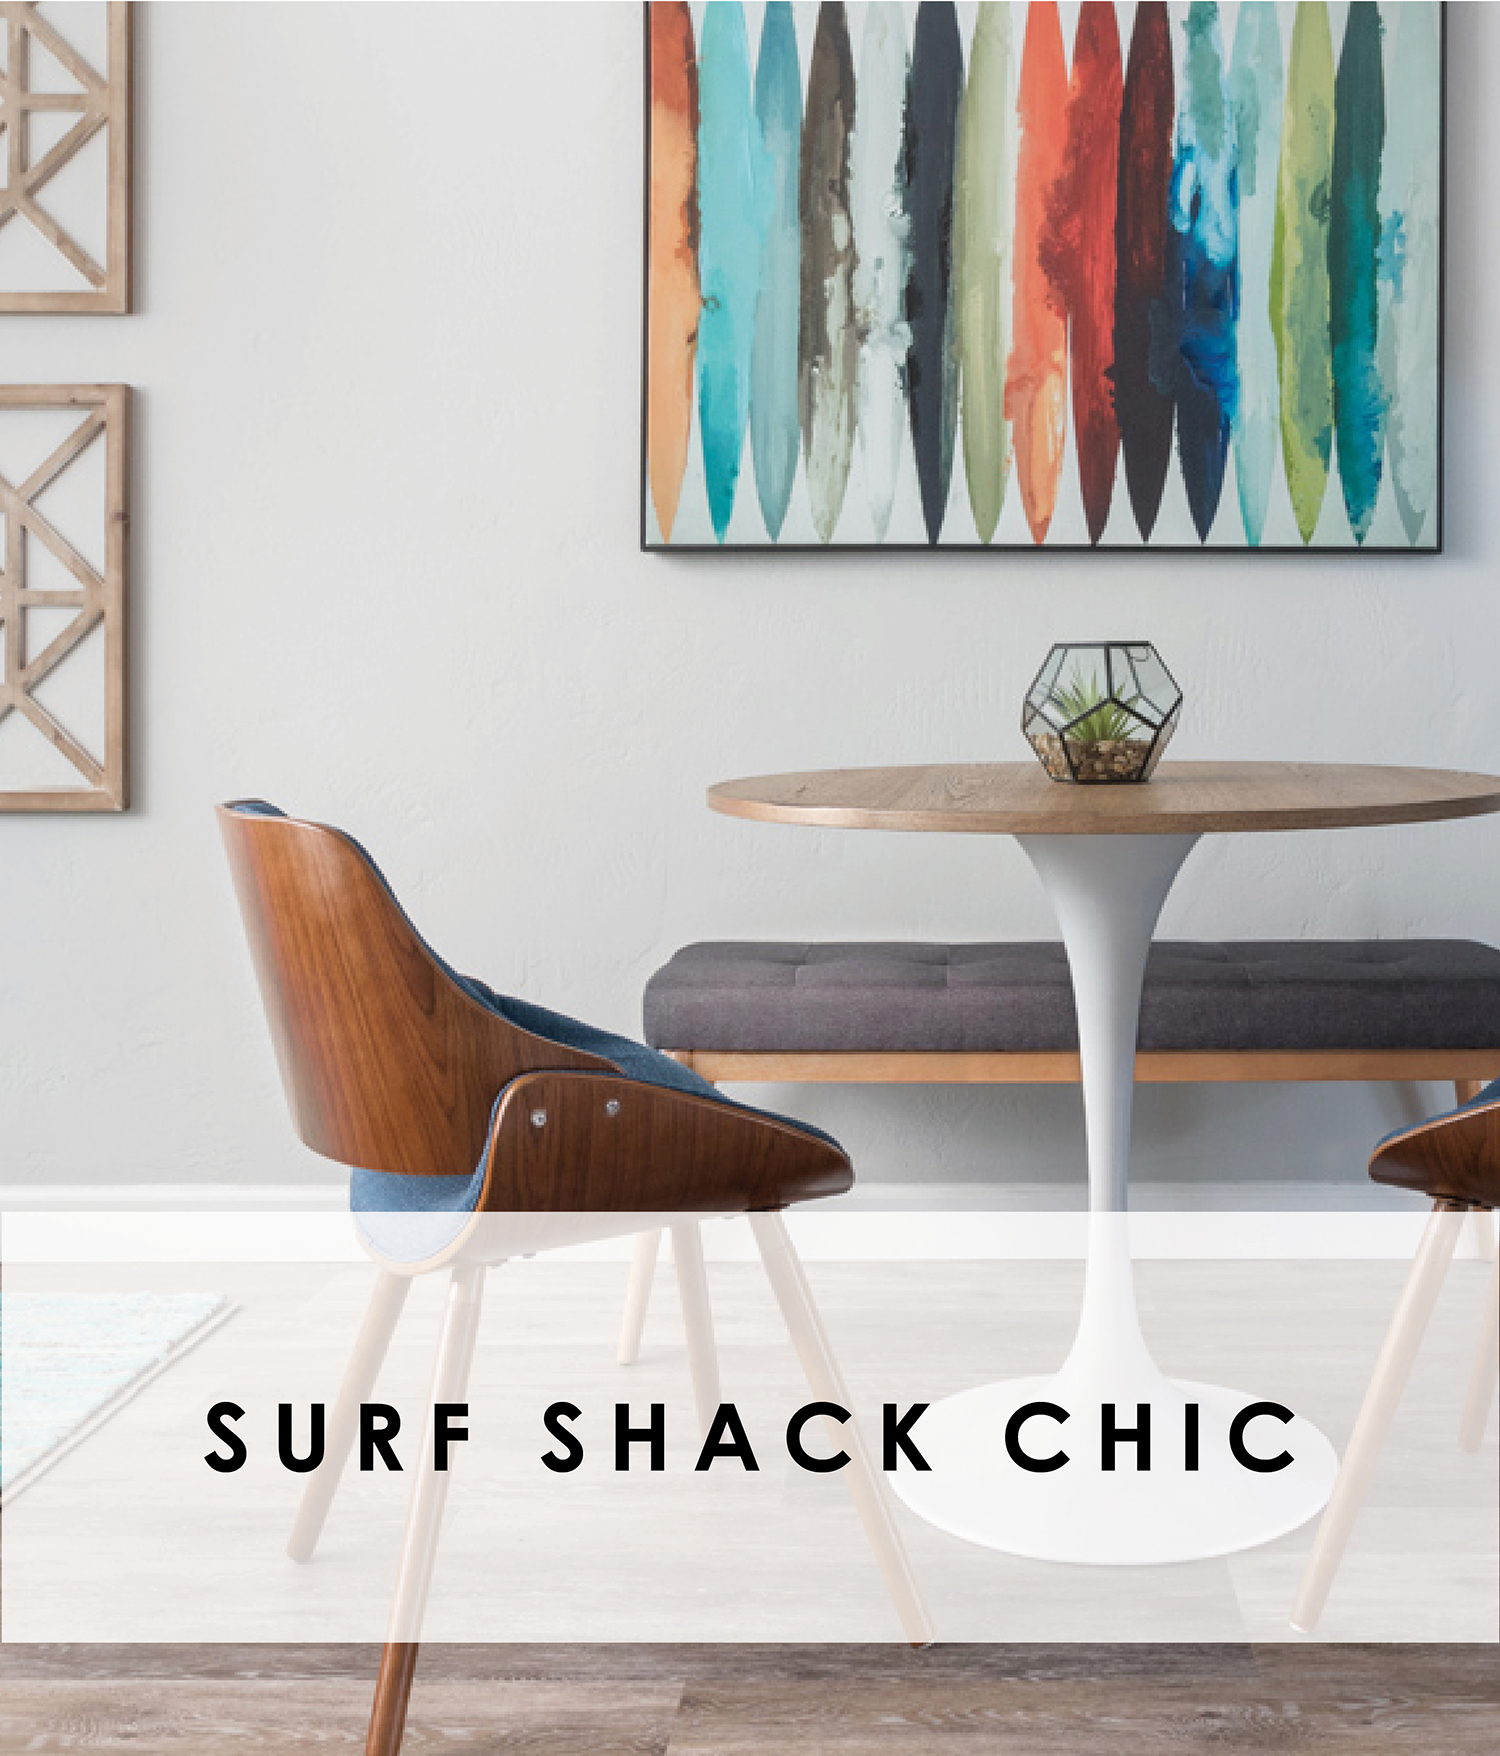 Surf Shack Chic